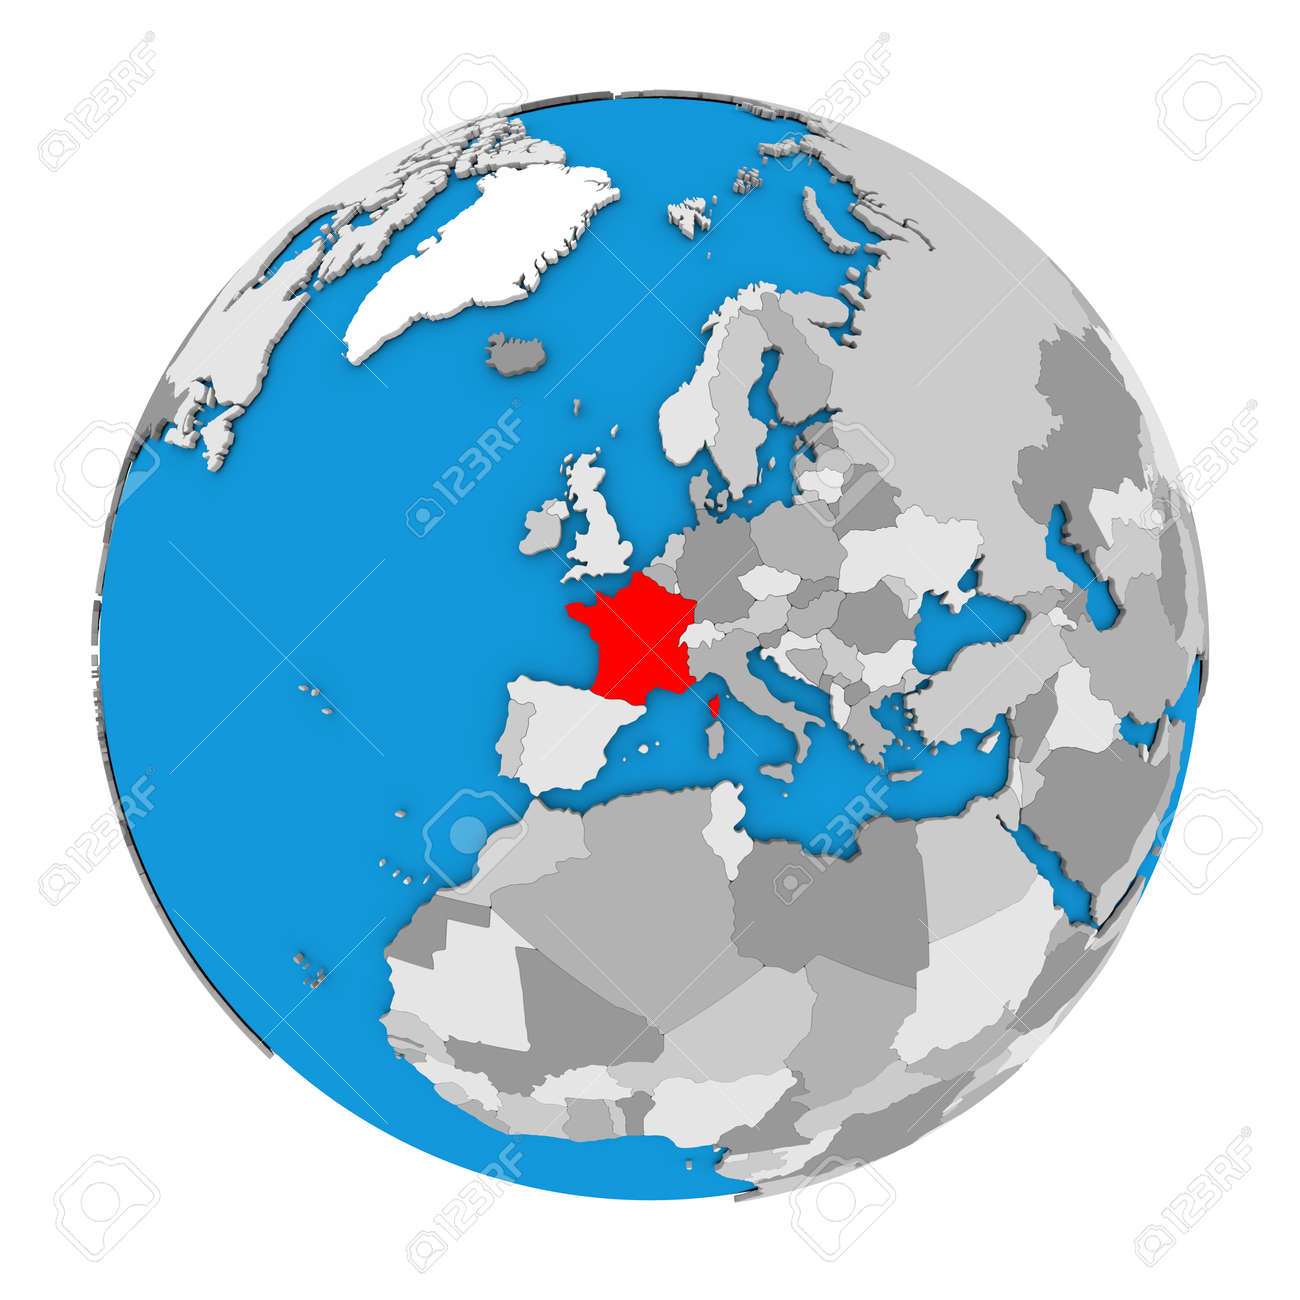 Map of france highlighted in red on globe 3d illustration isolated illustration map of france highlighted in red on globe 3d illustration isolated on white background gumiabroncs Images